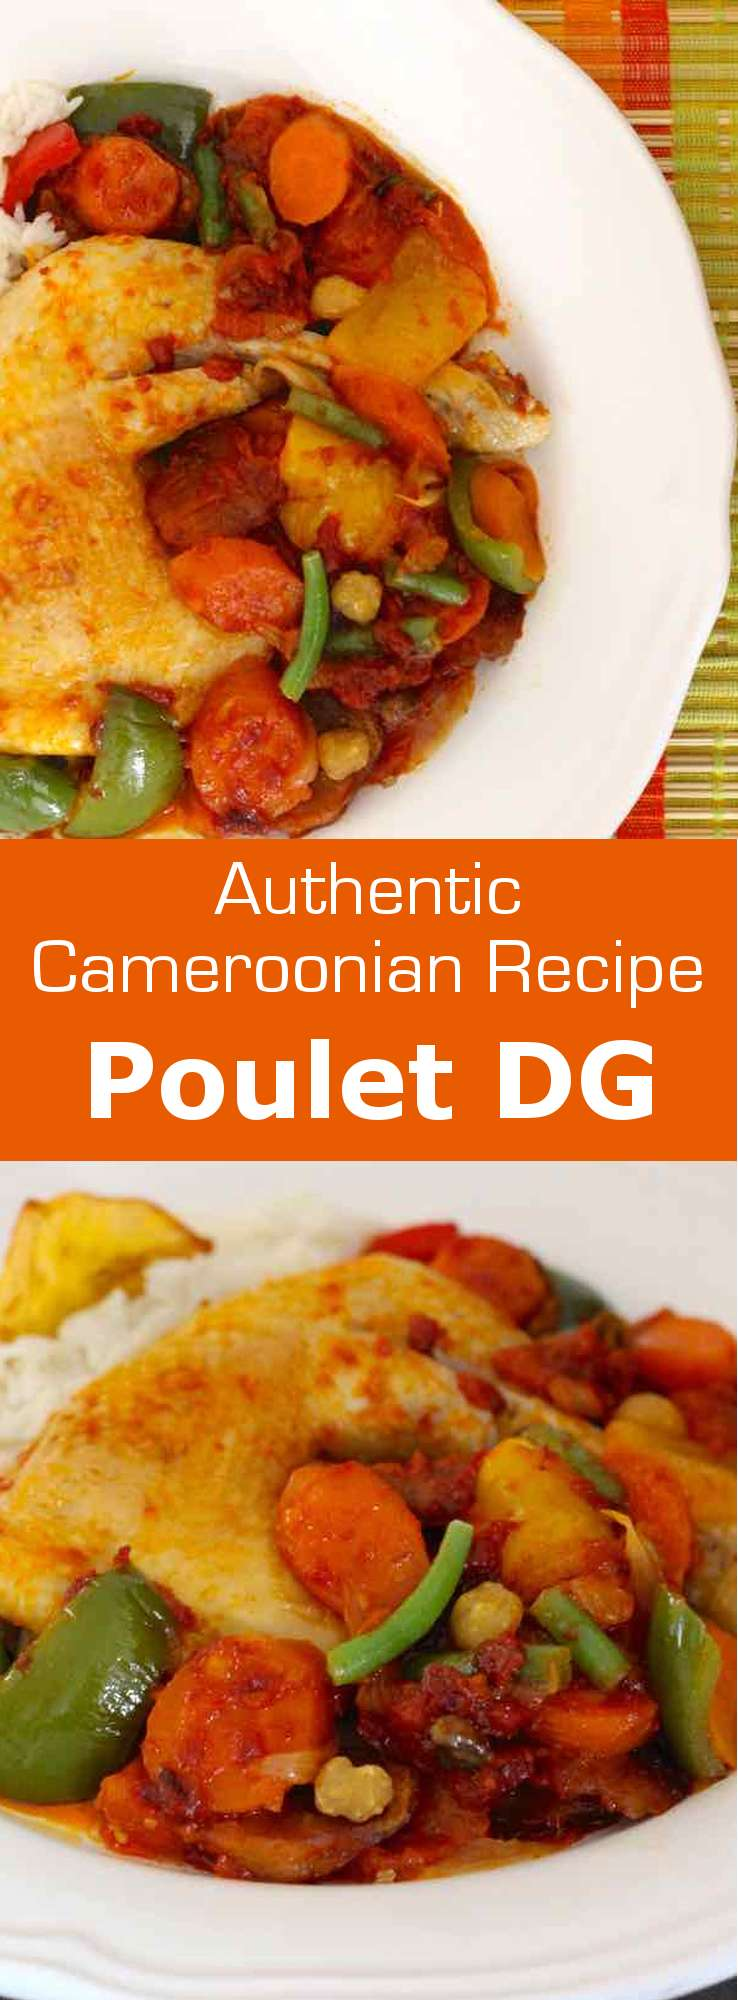 Poulet DG (Chicken Executive Officer) is a traditional recipe from Cameroon. It is prepared with chicken, plantains and vegetables. #Cameroon #Africa #196flavors